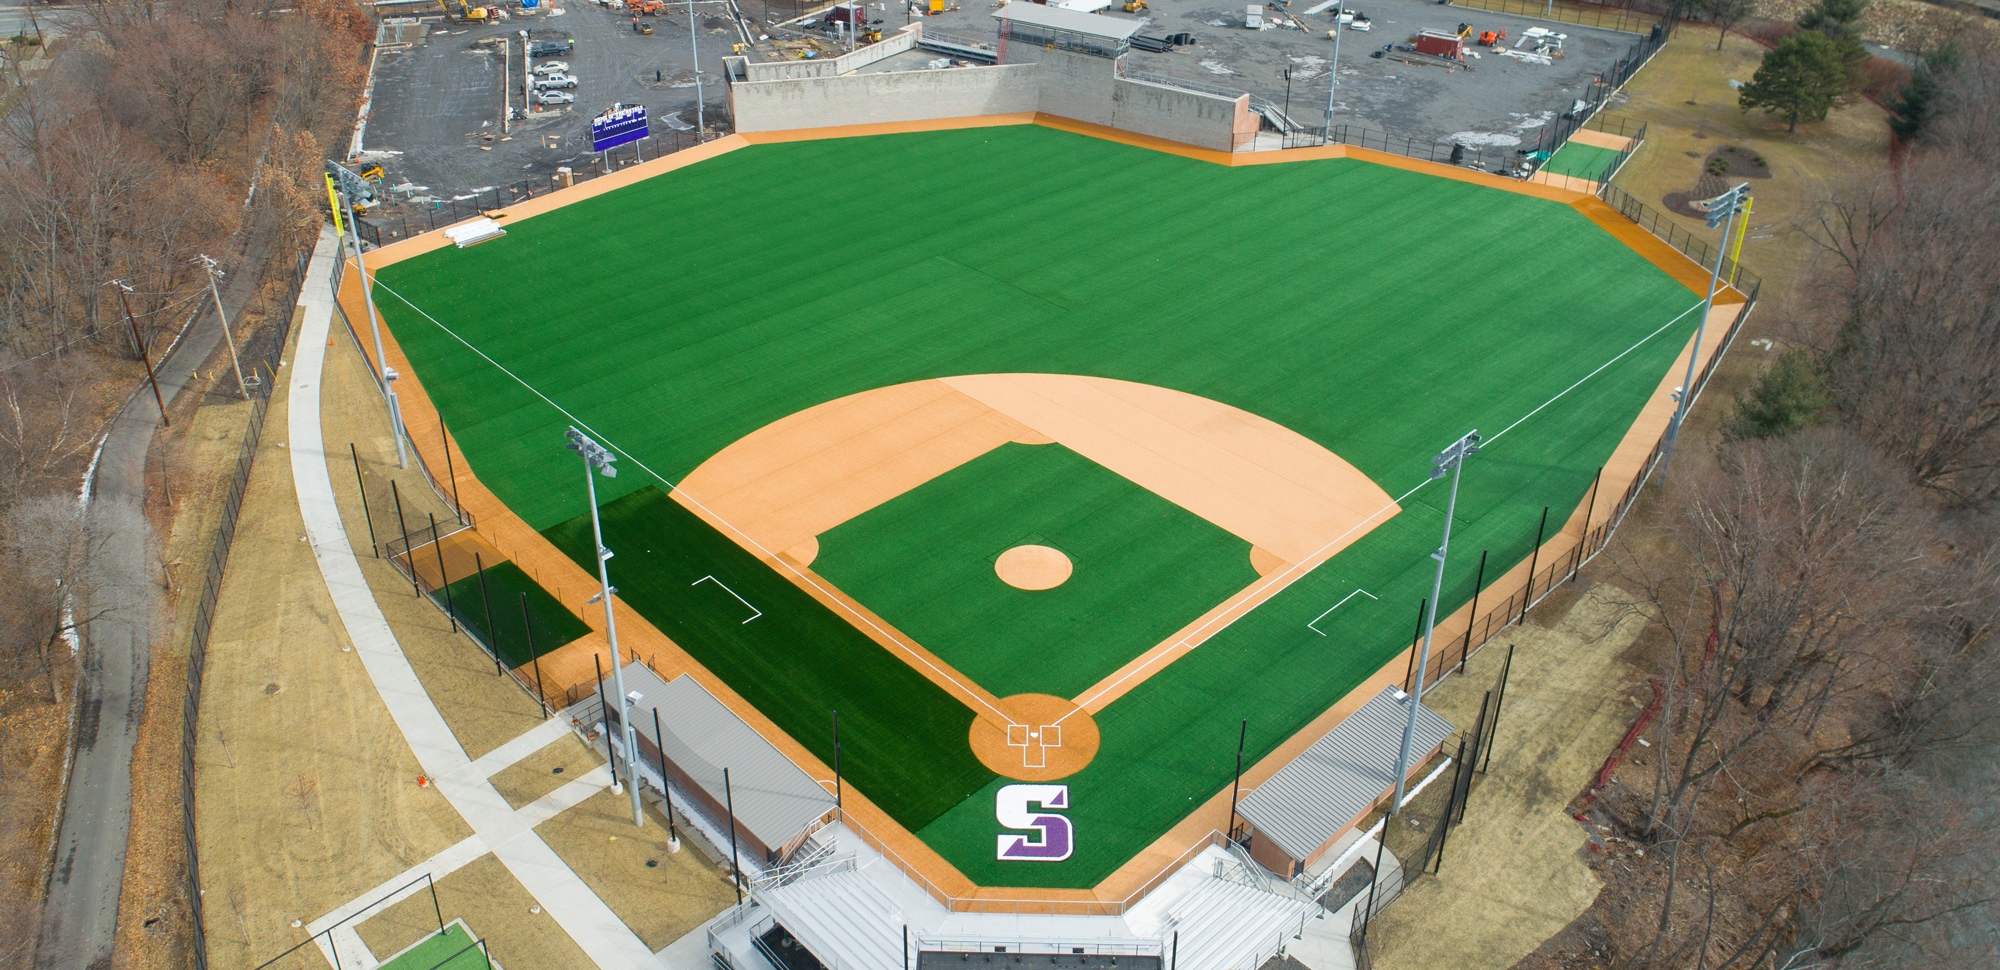 Turf Installed On Baseball Field In Latest Work At The Kevin P. Quinn S.J. Athletics Campus